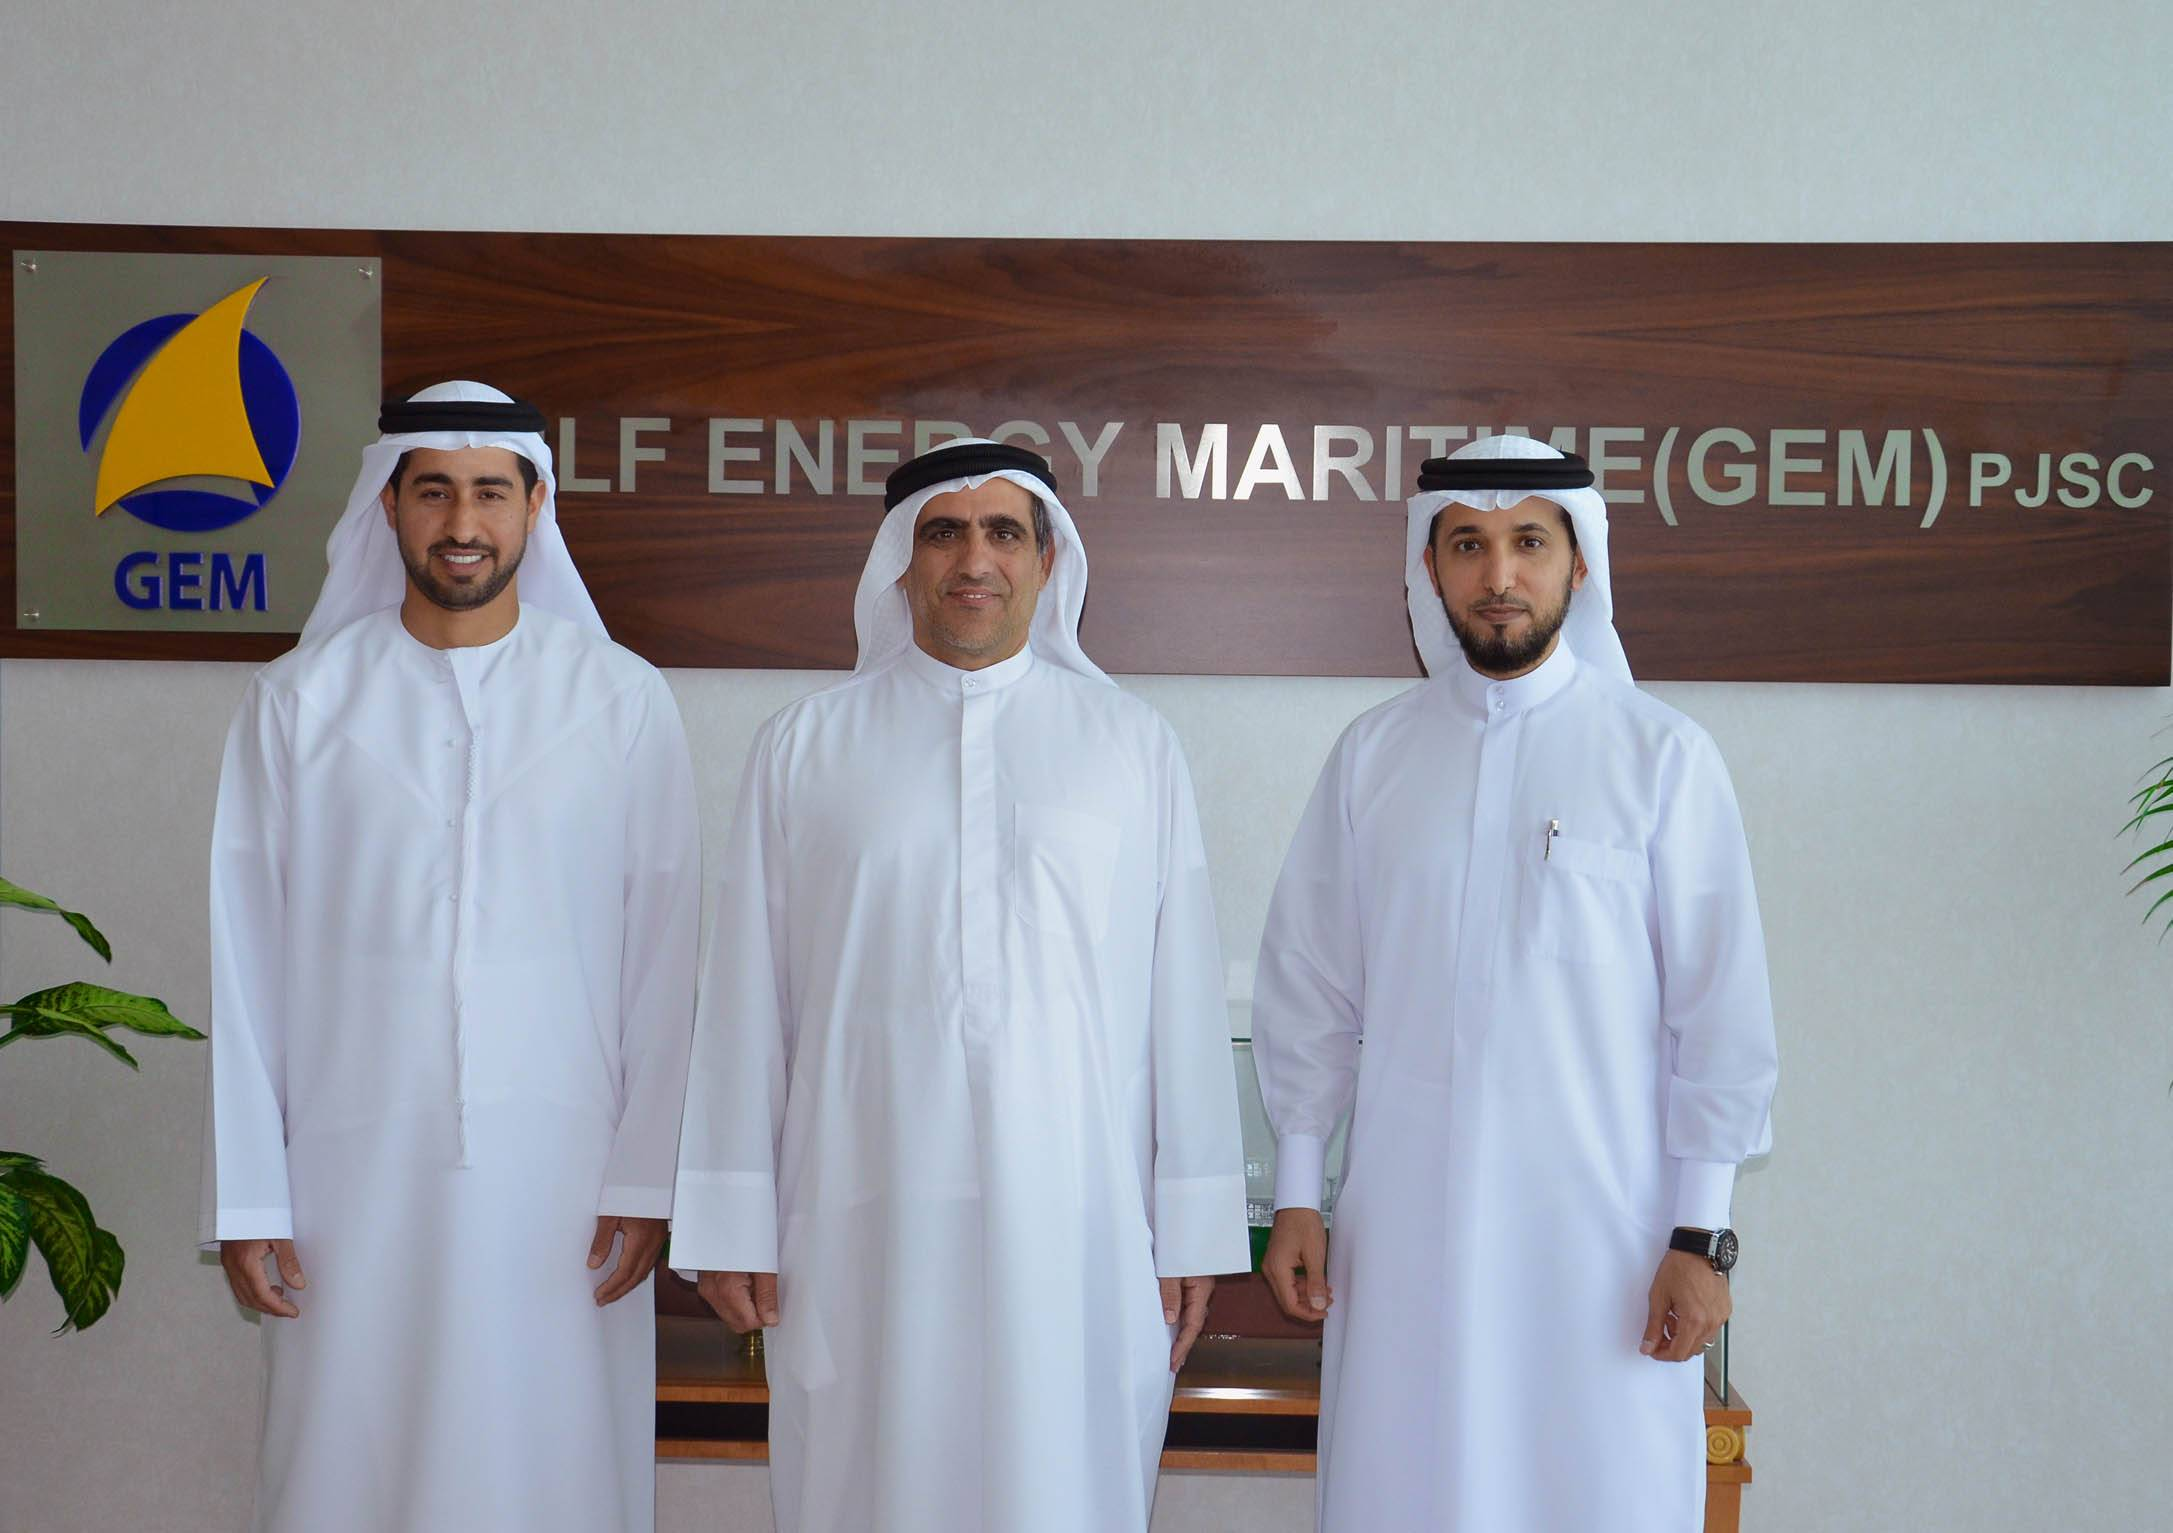 (L-R): Mr. Khalifa Abdulla Al Romaithi, new chairman of GEM; Mr. Saeed Abdulla Khoory; current chairman of GEM; and Mr. Ahmed AL Falahi, CEO of GEM.